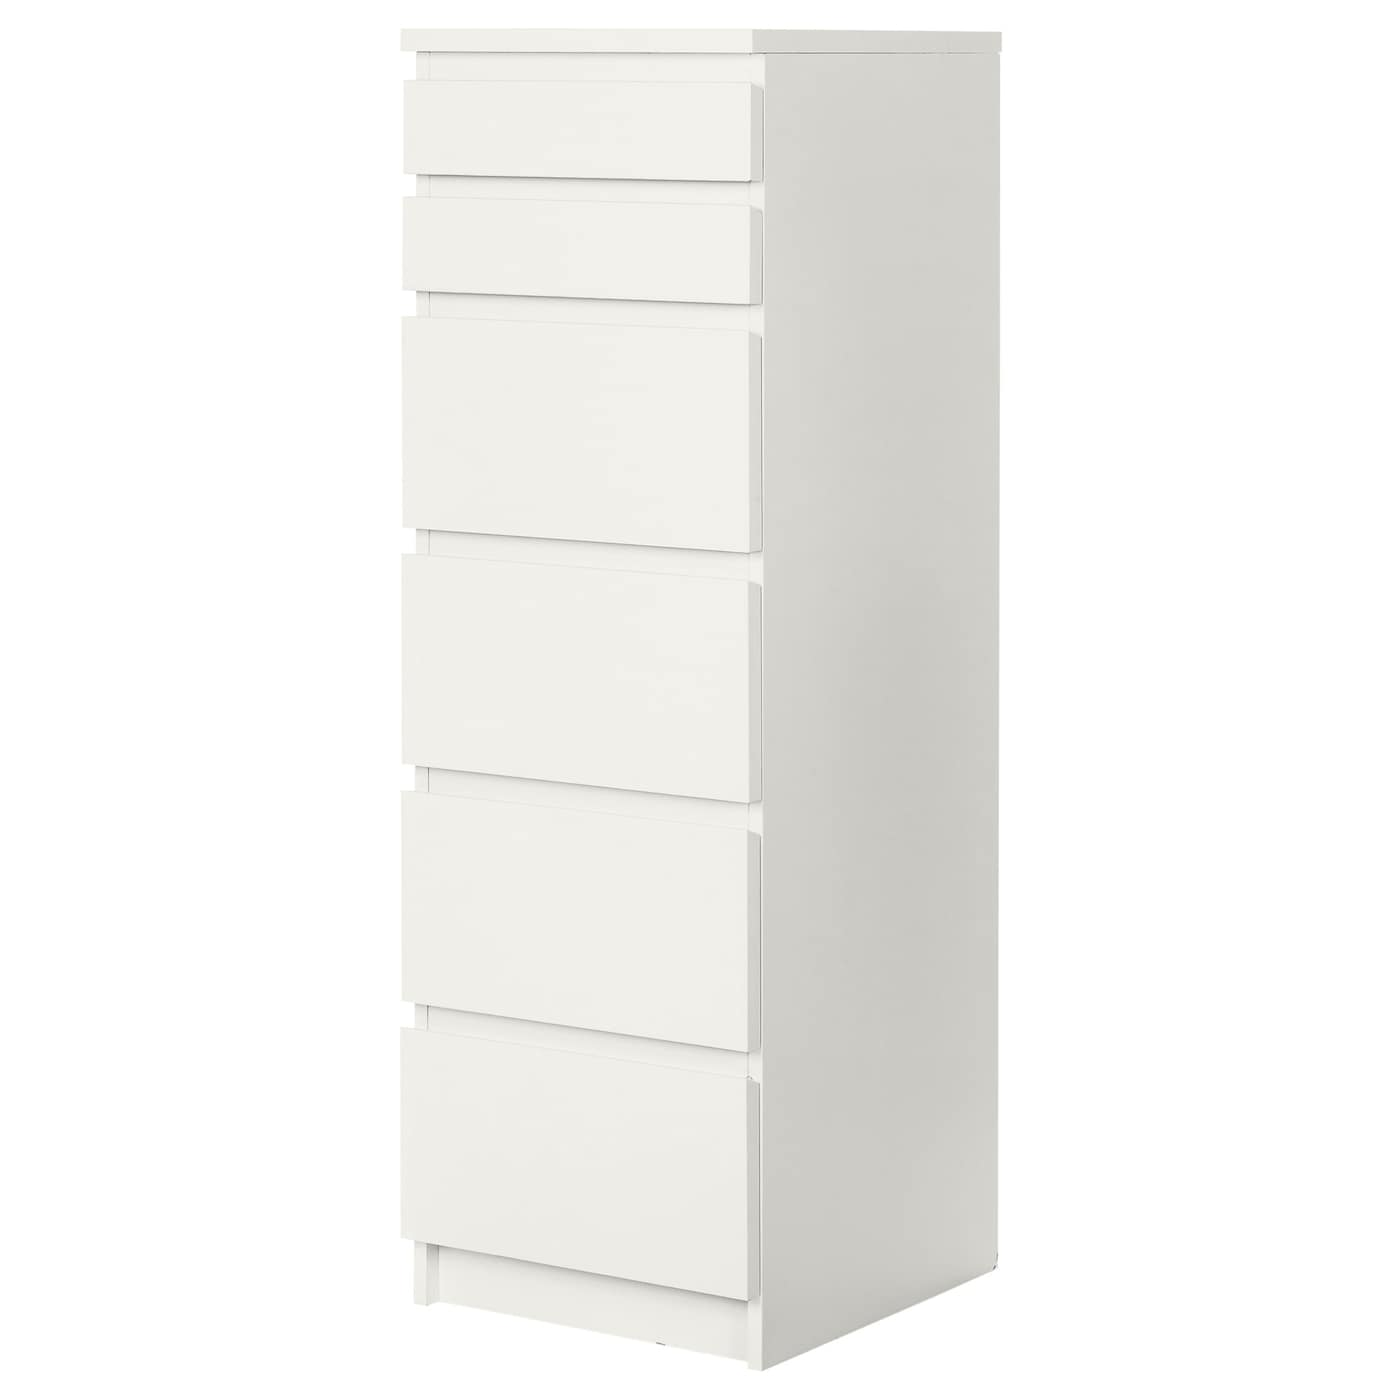 Malm Chest Of 6 Drawers Whitemirror Glass 40 X 123 Cm Ikea